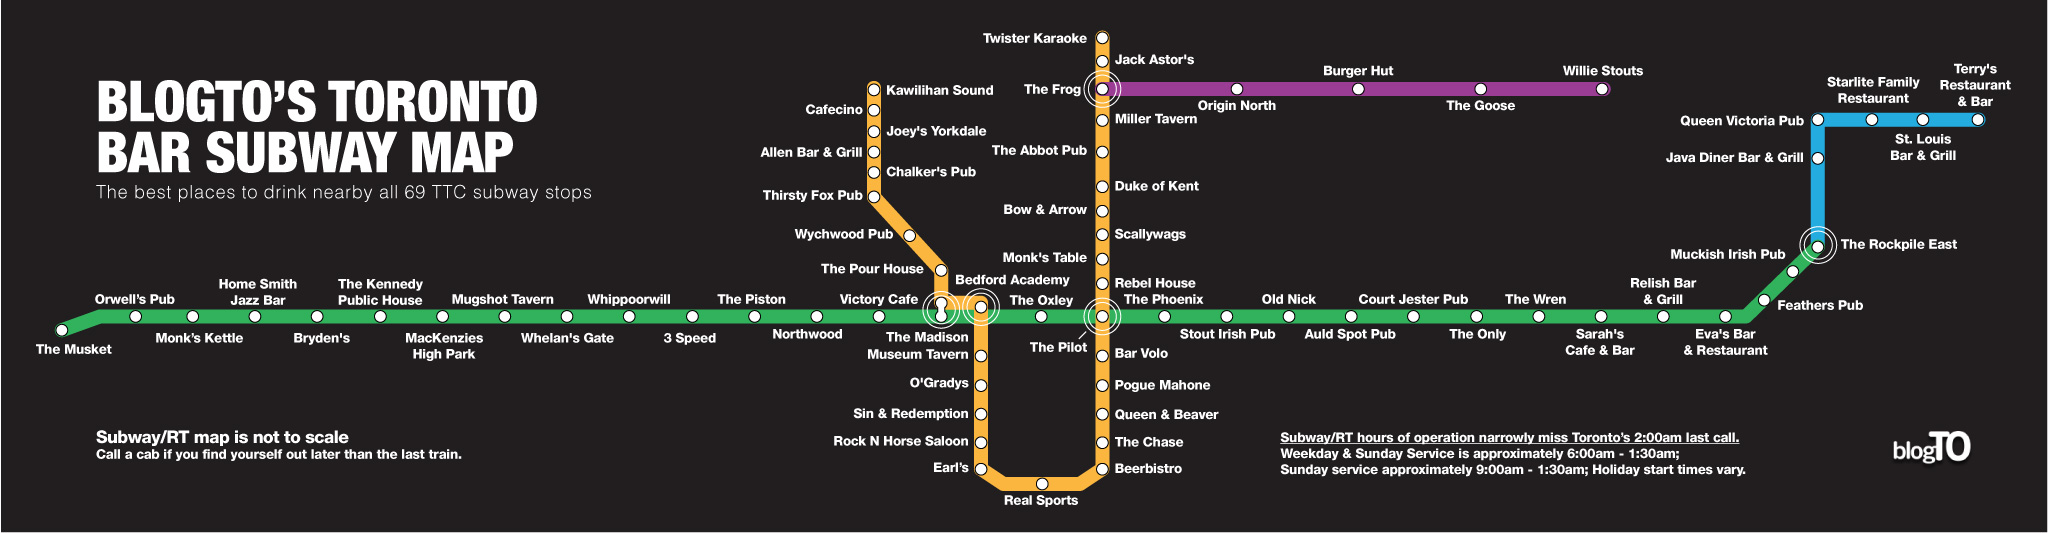 torontos subway The toronto transit commission is the quick, convenient and safe way to get around toronto the subway system is linked with buses and streetcars to get you around toronto on one fare, provided it's a one-way trip with no stopovers.